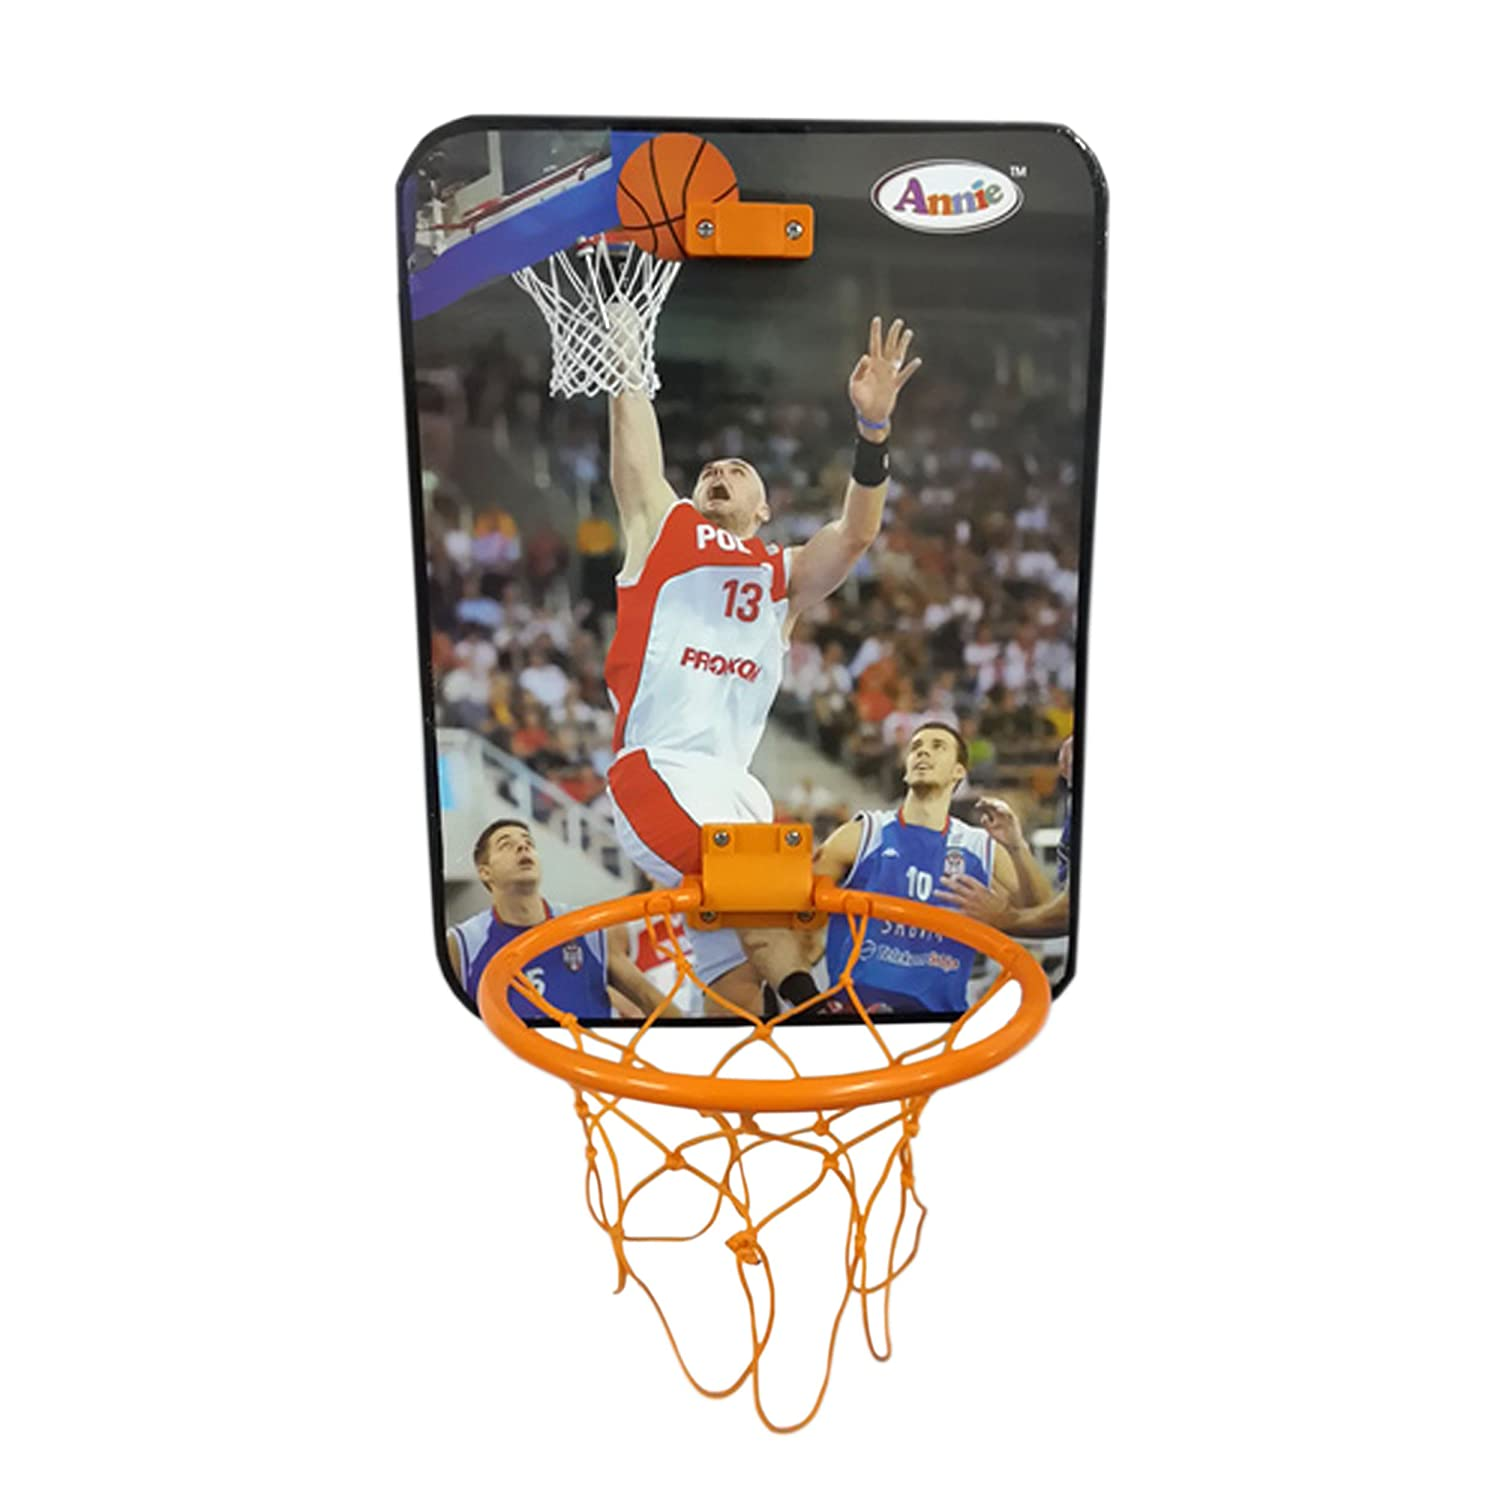 buy annie royal basket ball multi color online at low prices in